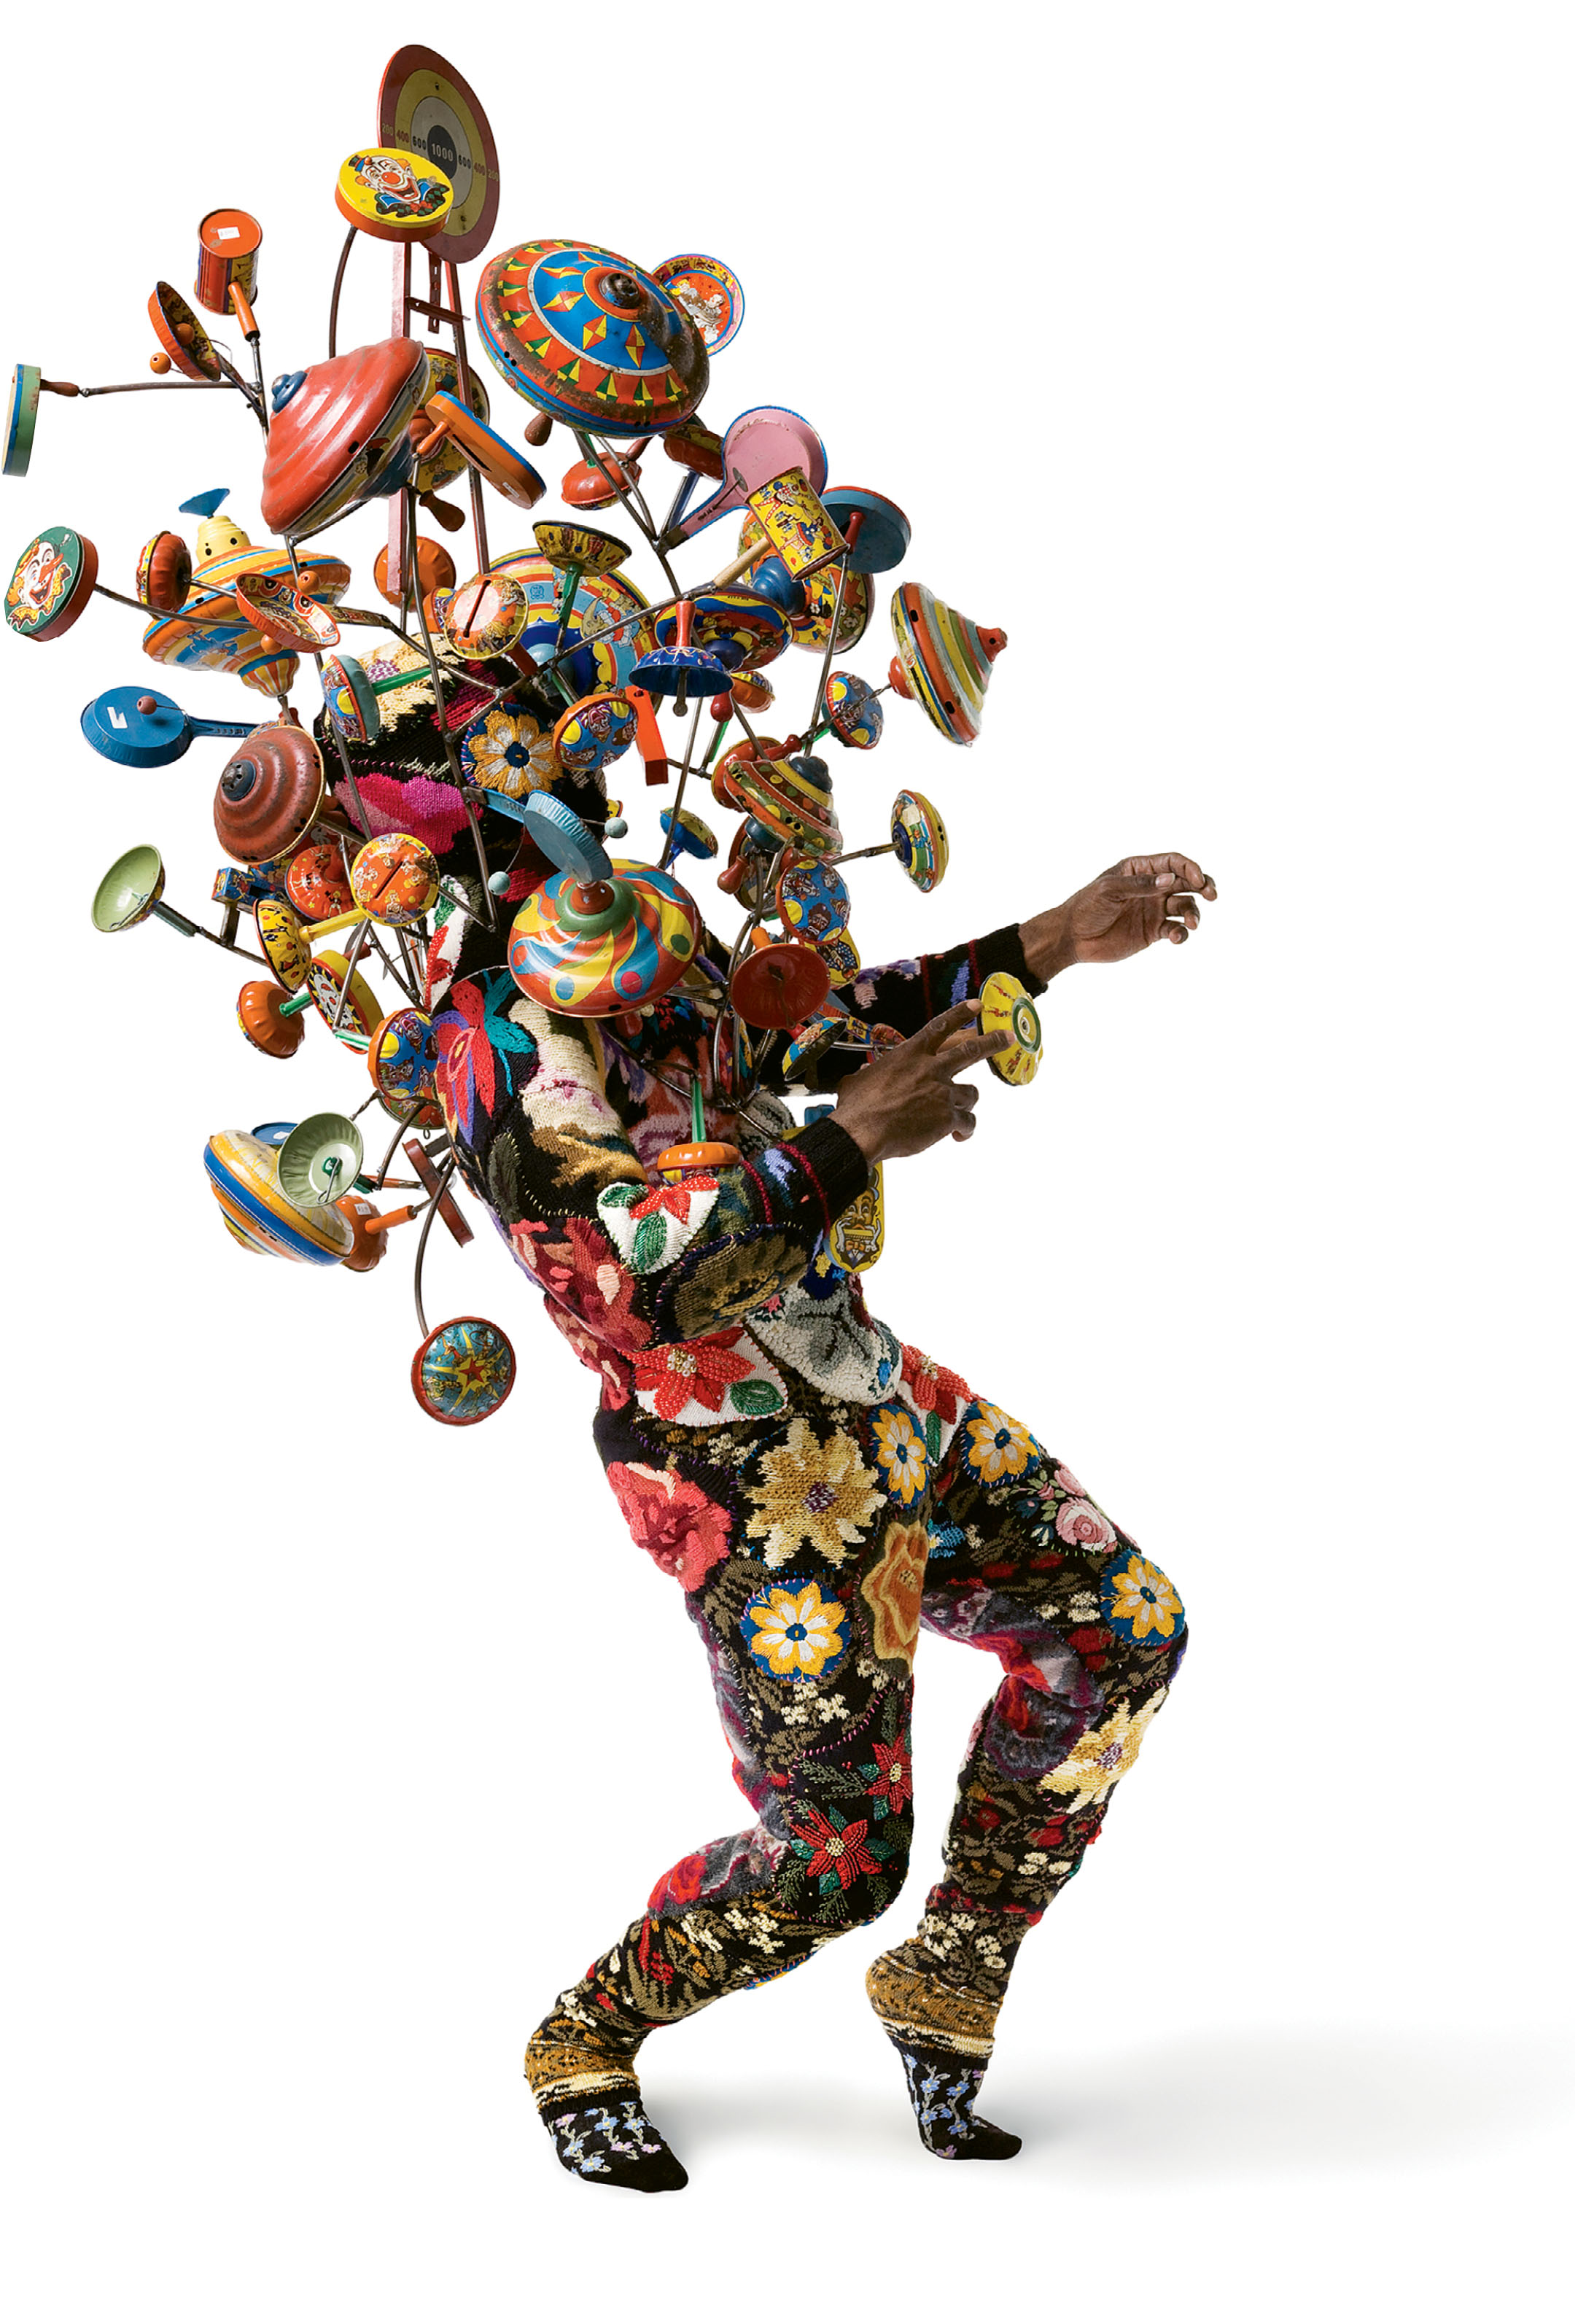 """Artist Nick Cave's sculptural Soundsuits exemplify the whimsical, somewhat off-kilter conceptual art that Sloan is drawn to. """"It's not what you expect to find in the middle of historic Charleston,"""" he says."""